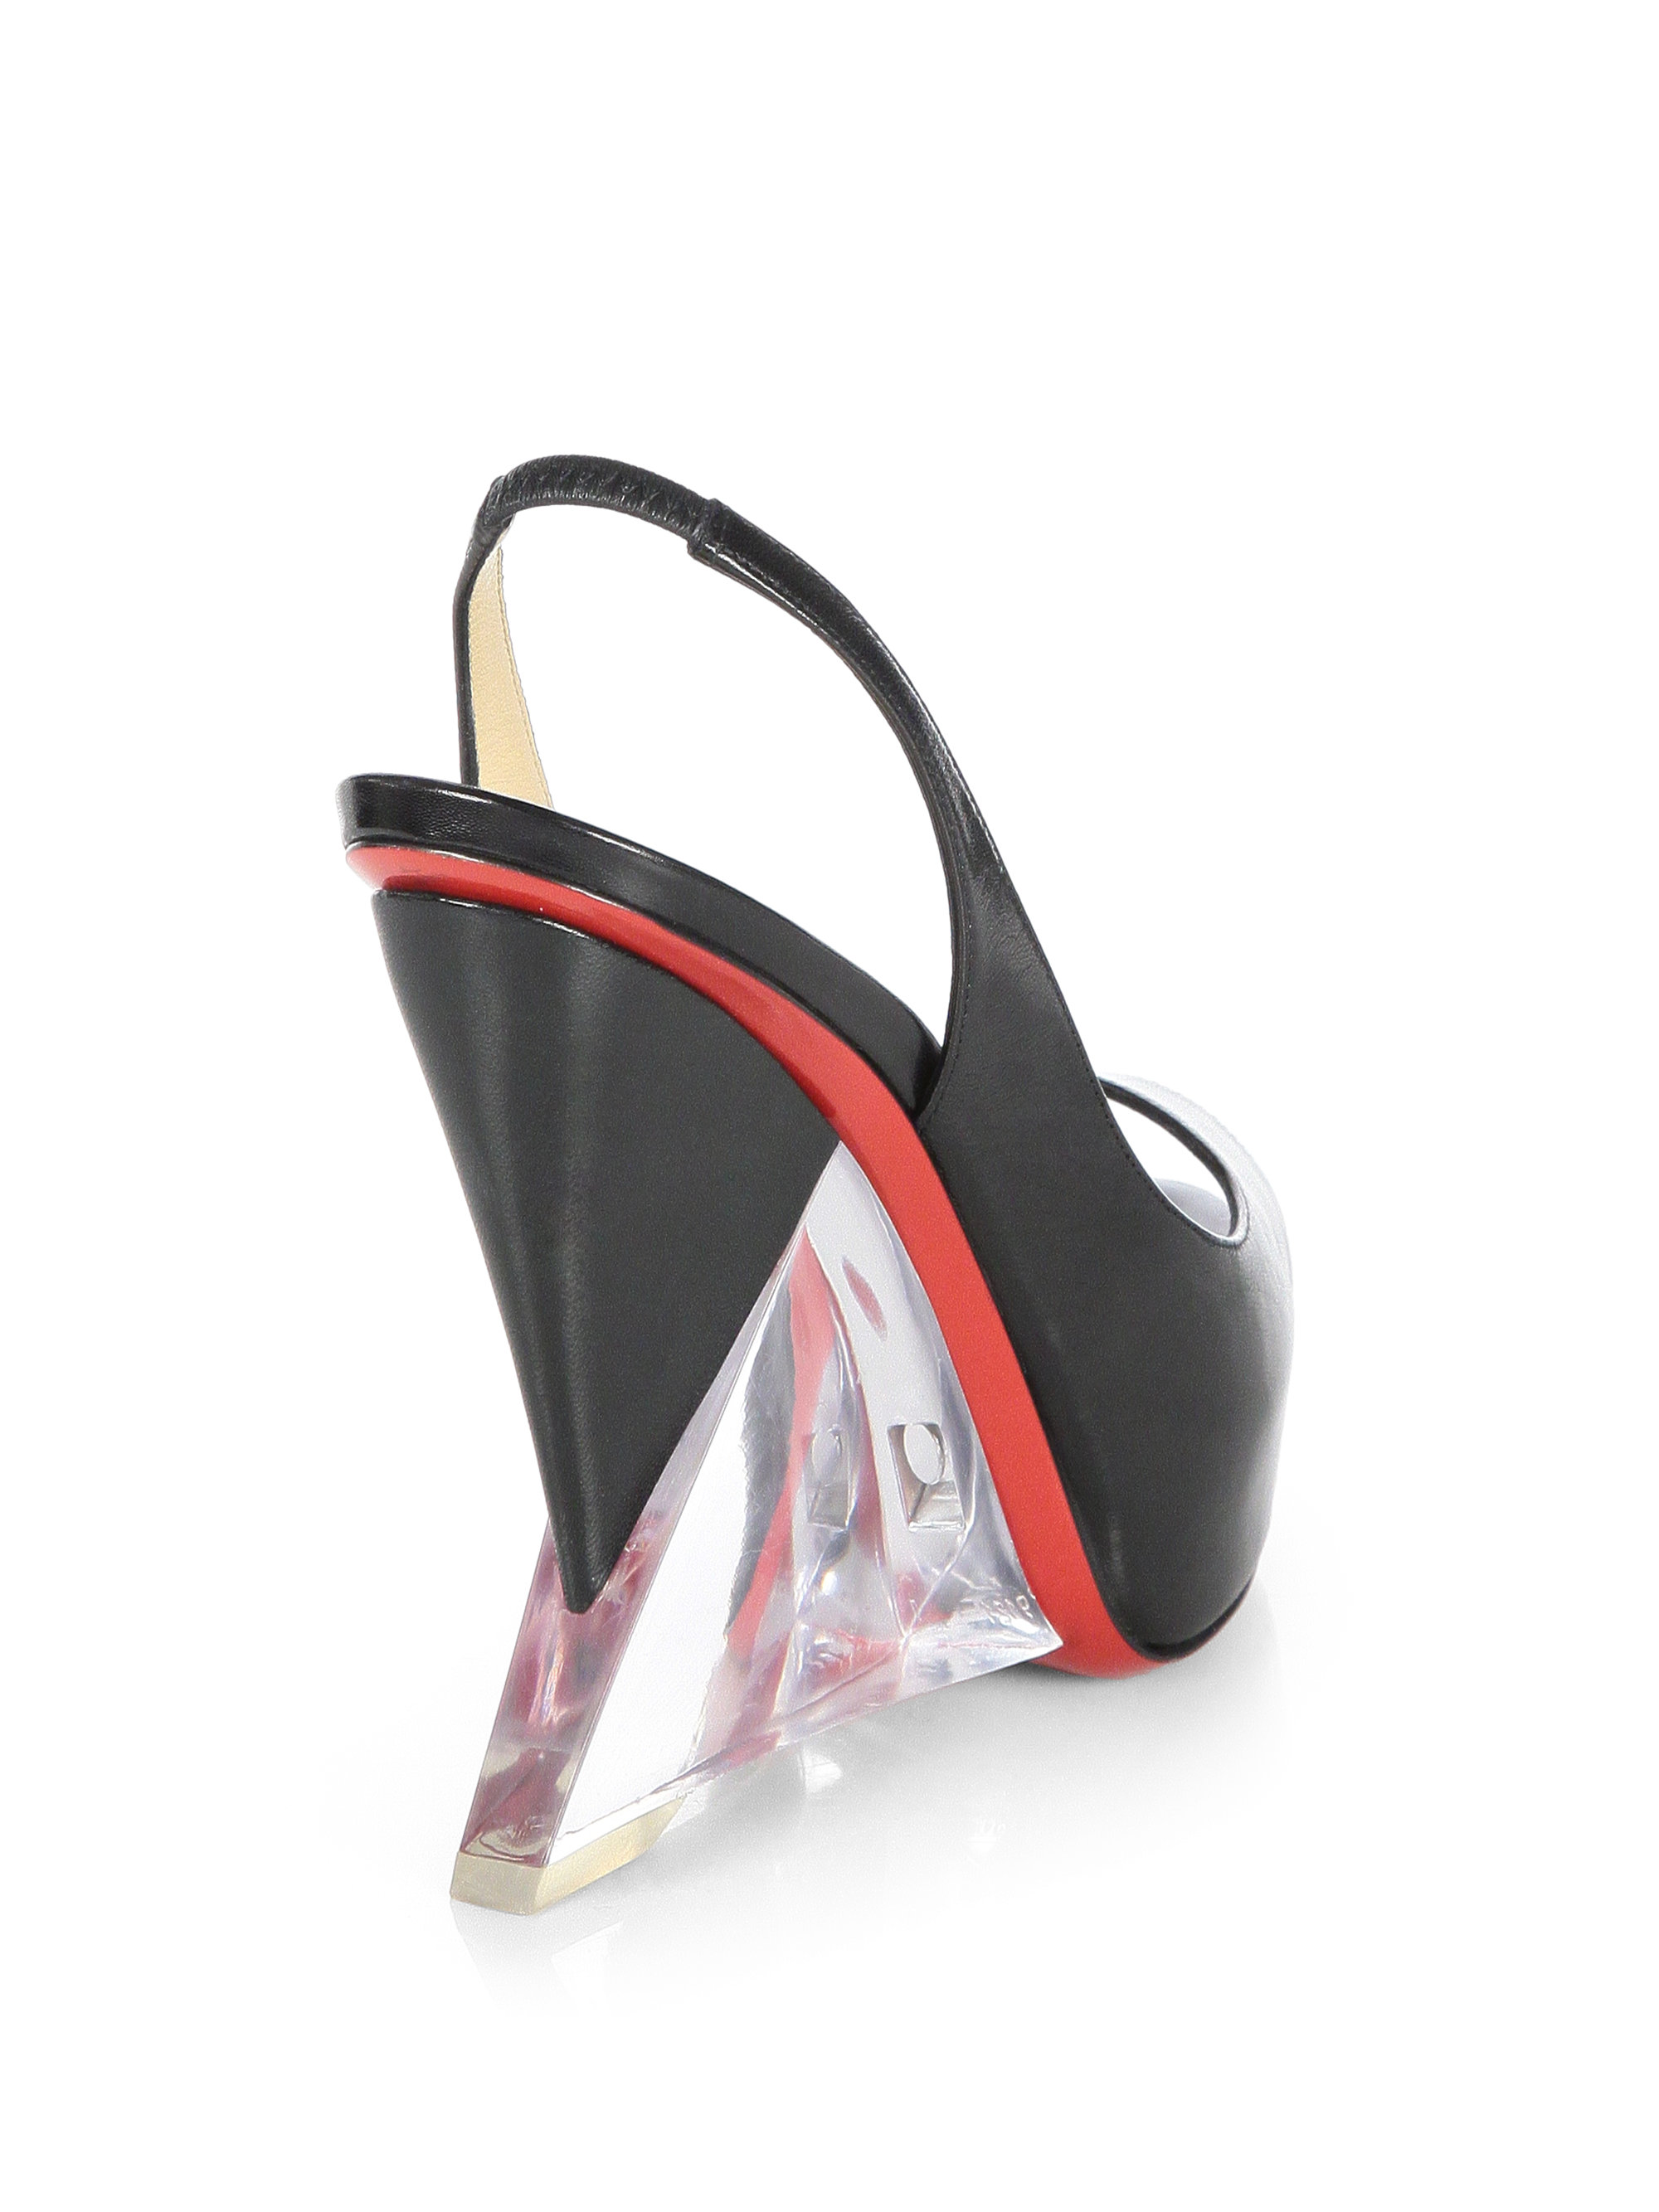 christian louboutin fake - Peony Design ? christian louboutin leather plexi wedge slingback pumps